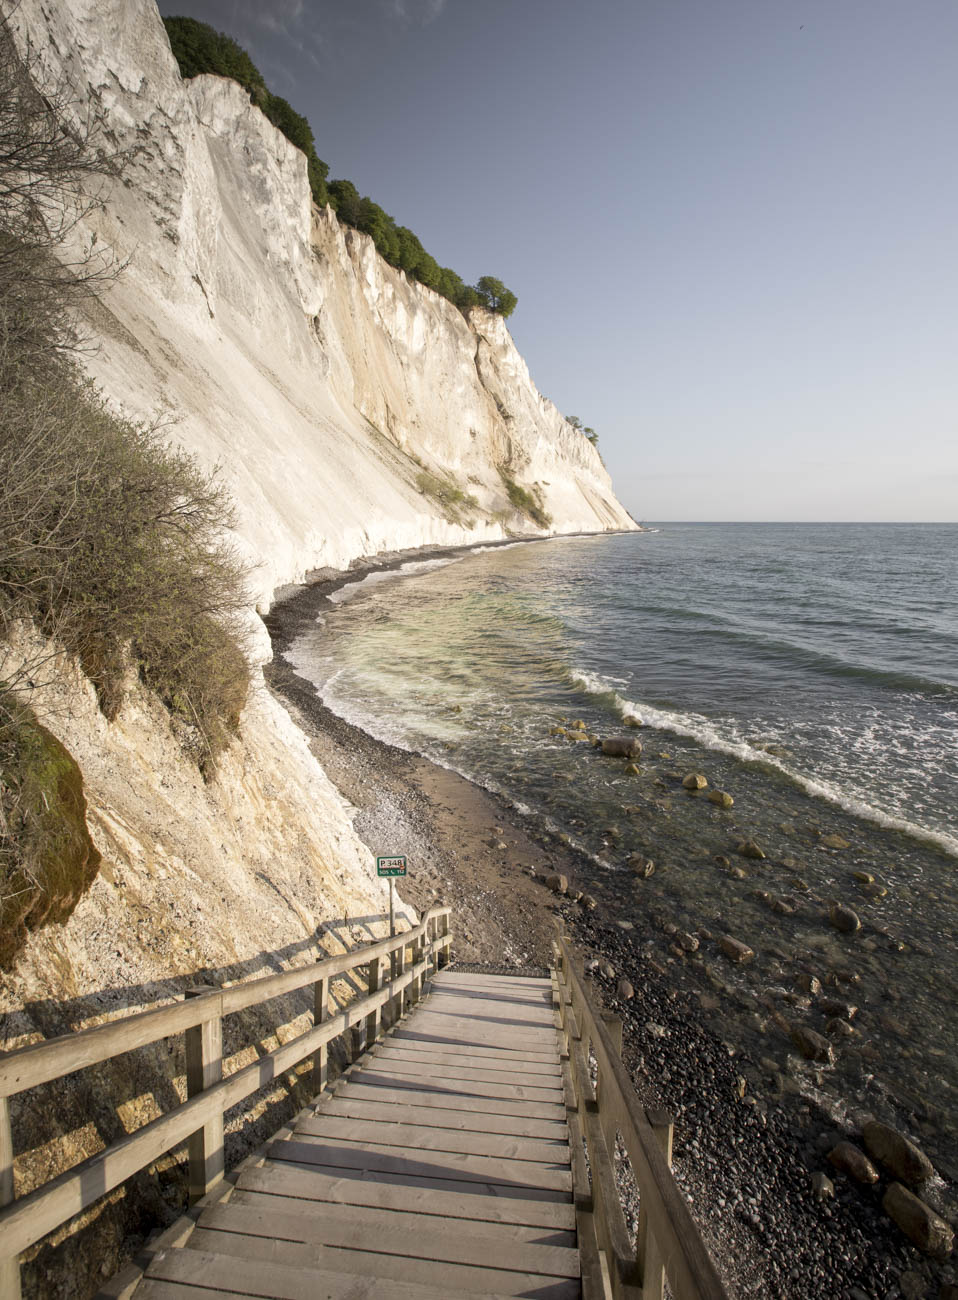 Once you encounter the last steps, the steepness of the cliffs becomes very apparent